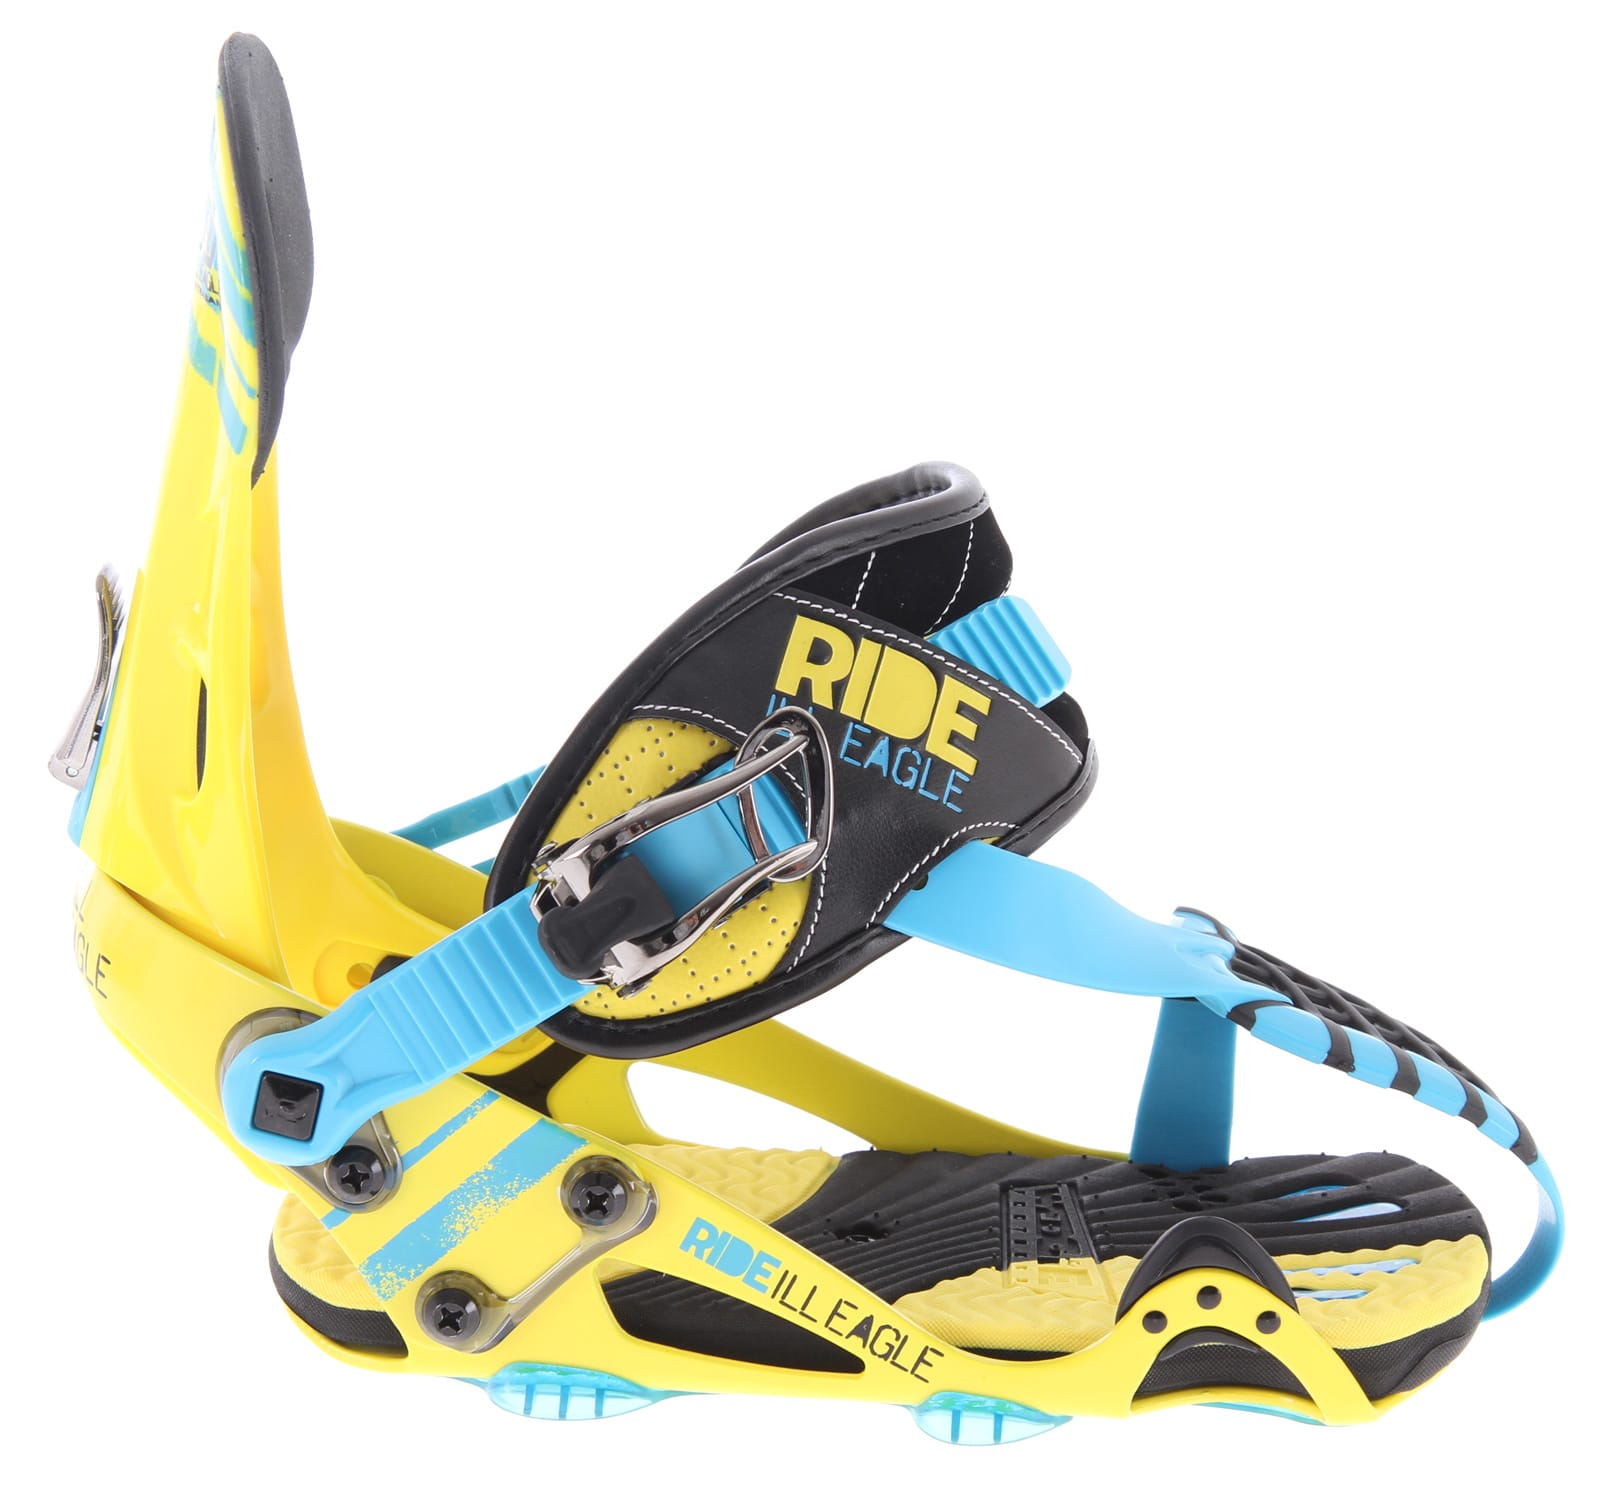 Shop for Ride Ill Eagle Contraband Snowboard Bindings Yellow - Men's